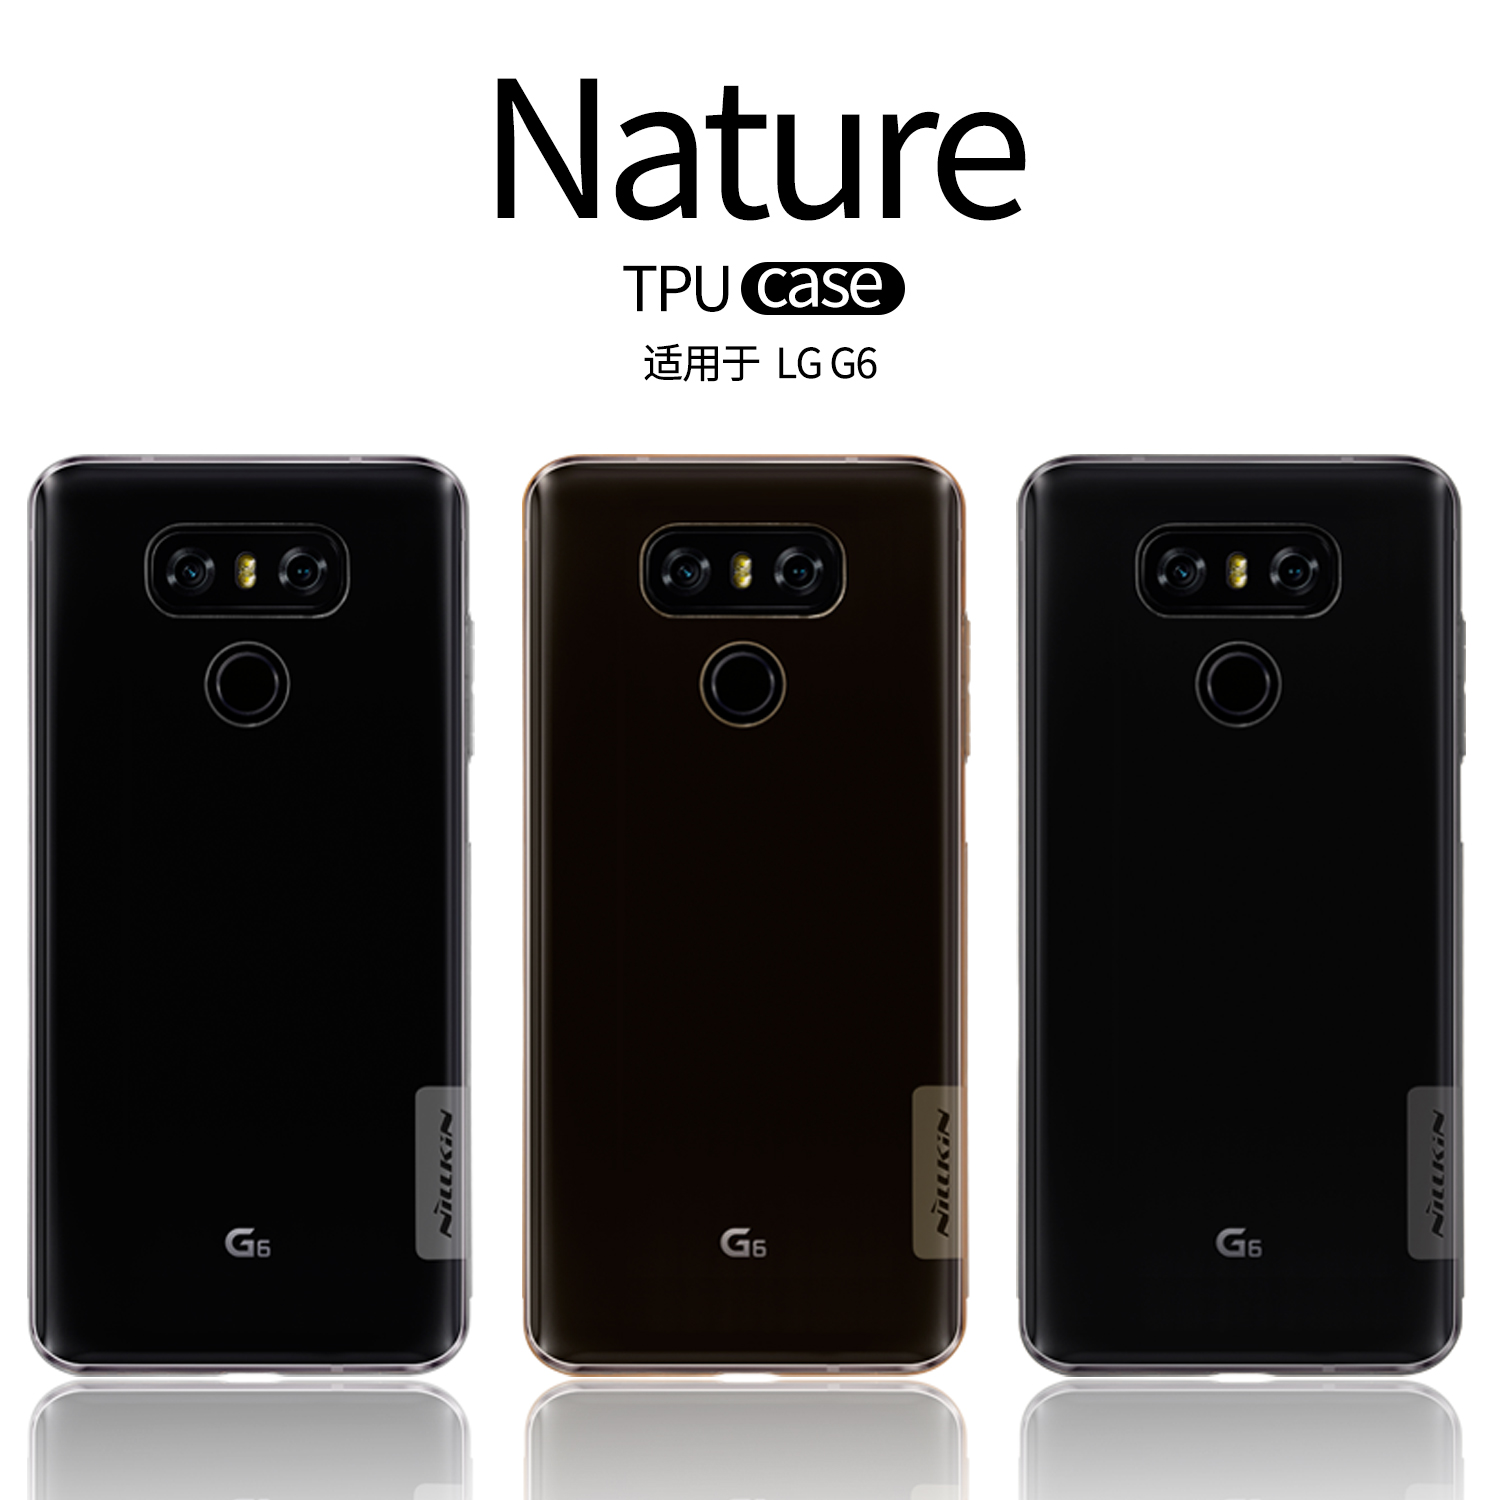 "Nillkin Nature Soft TPU Case LG G6 5.7""inch Clear Back Cover LG G6 H870 H871 H872 Dual Sim H870DS Slim Silicone Case"